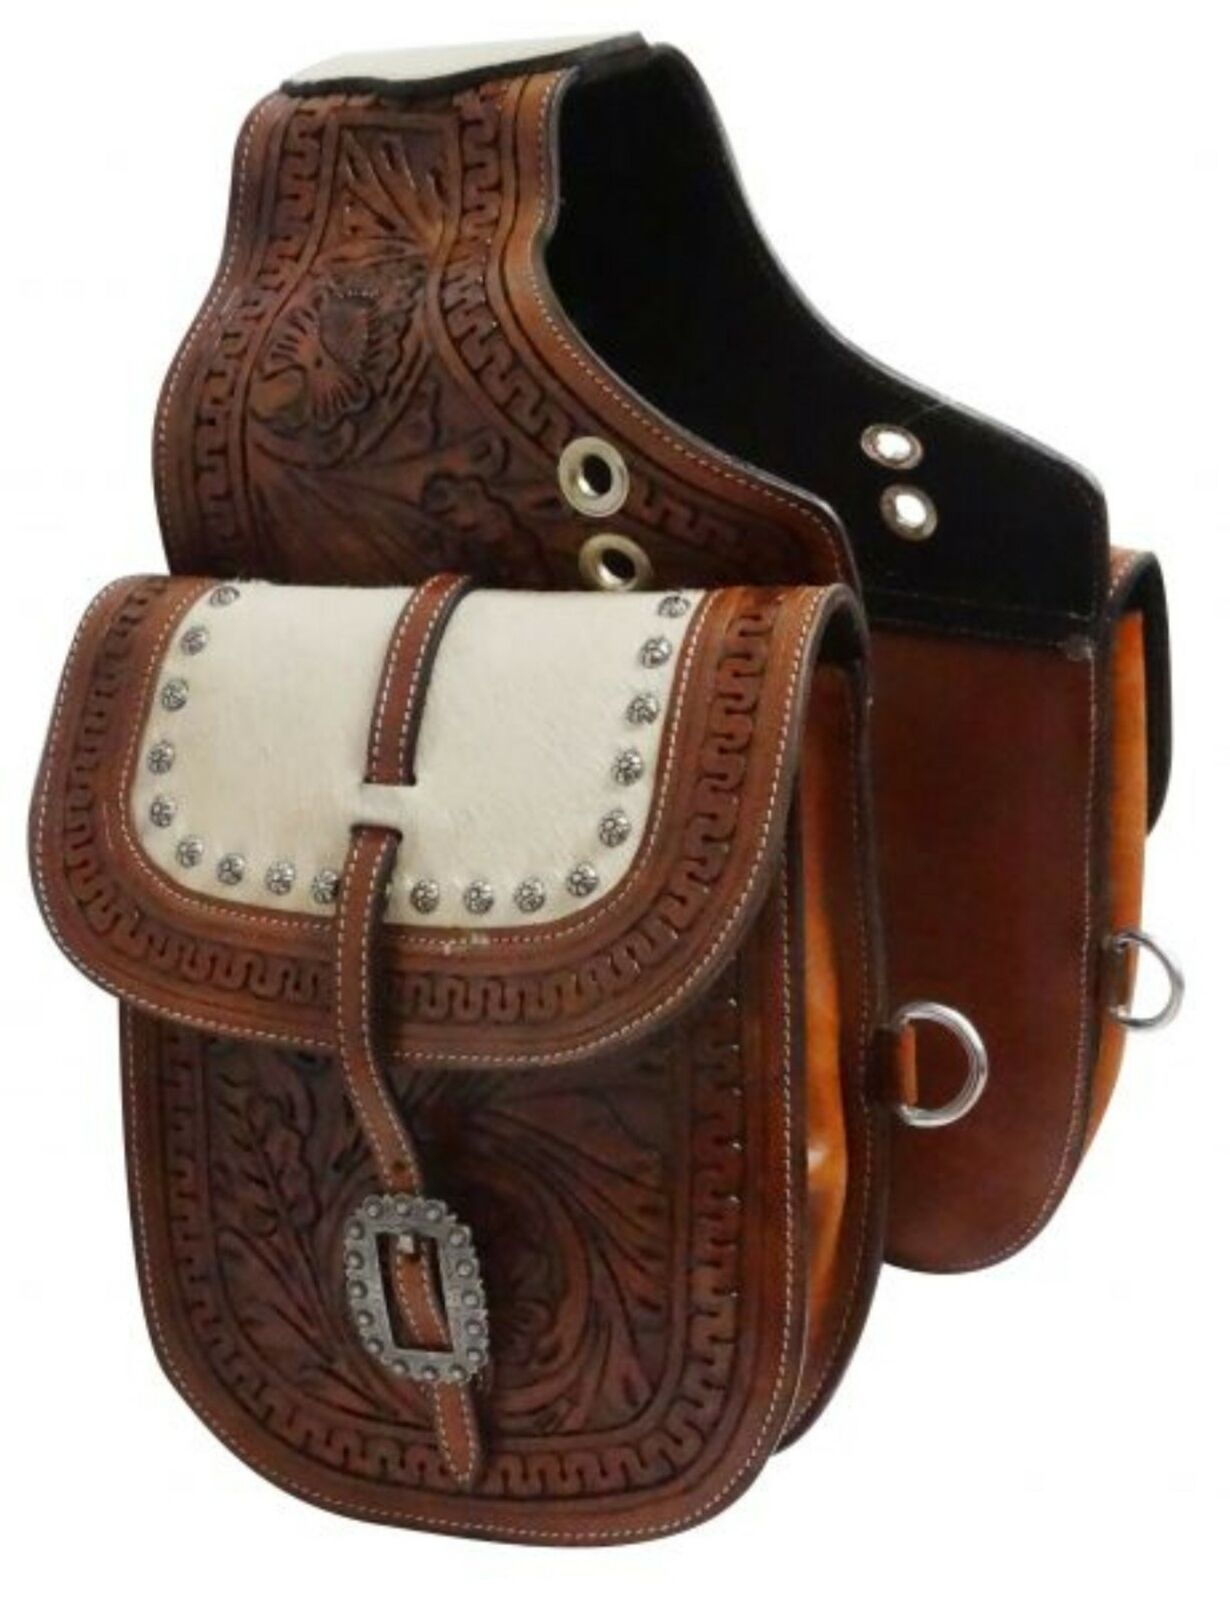 Showman MEDIUM OIL Leather Western Saddle Bag with Hair On Cowhide Overlay